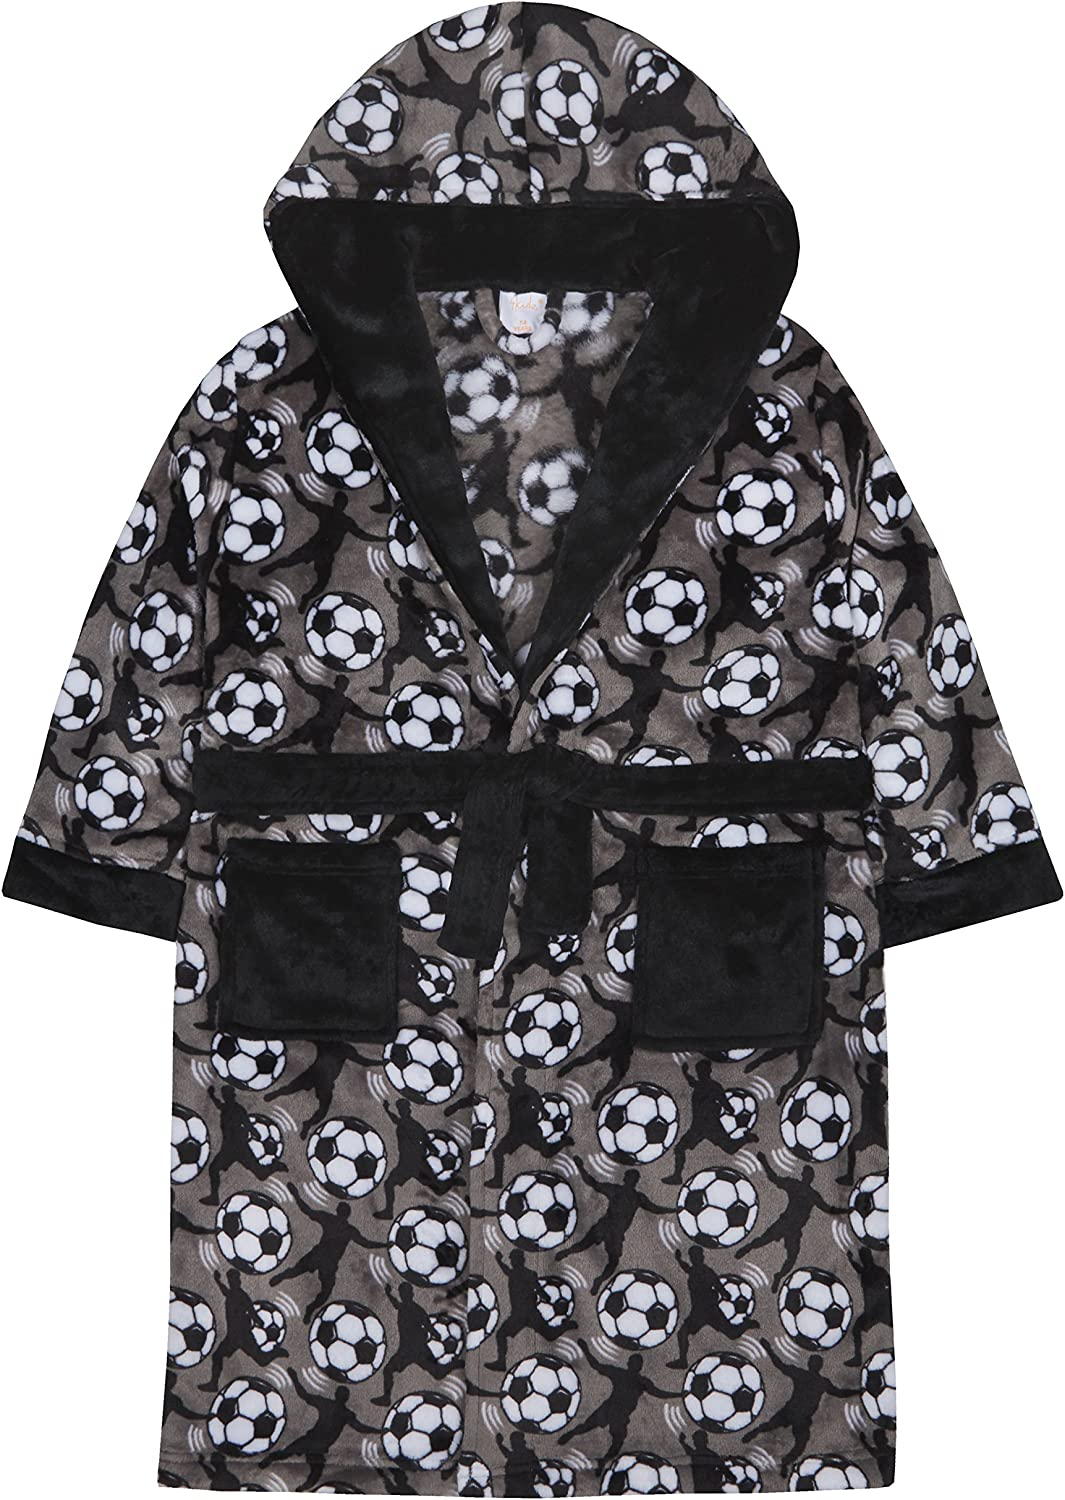 4 KIDZ Boys Football Design Fleece Dressing Gown